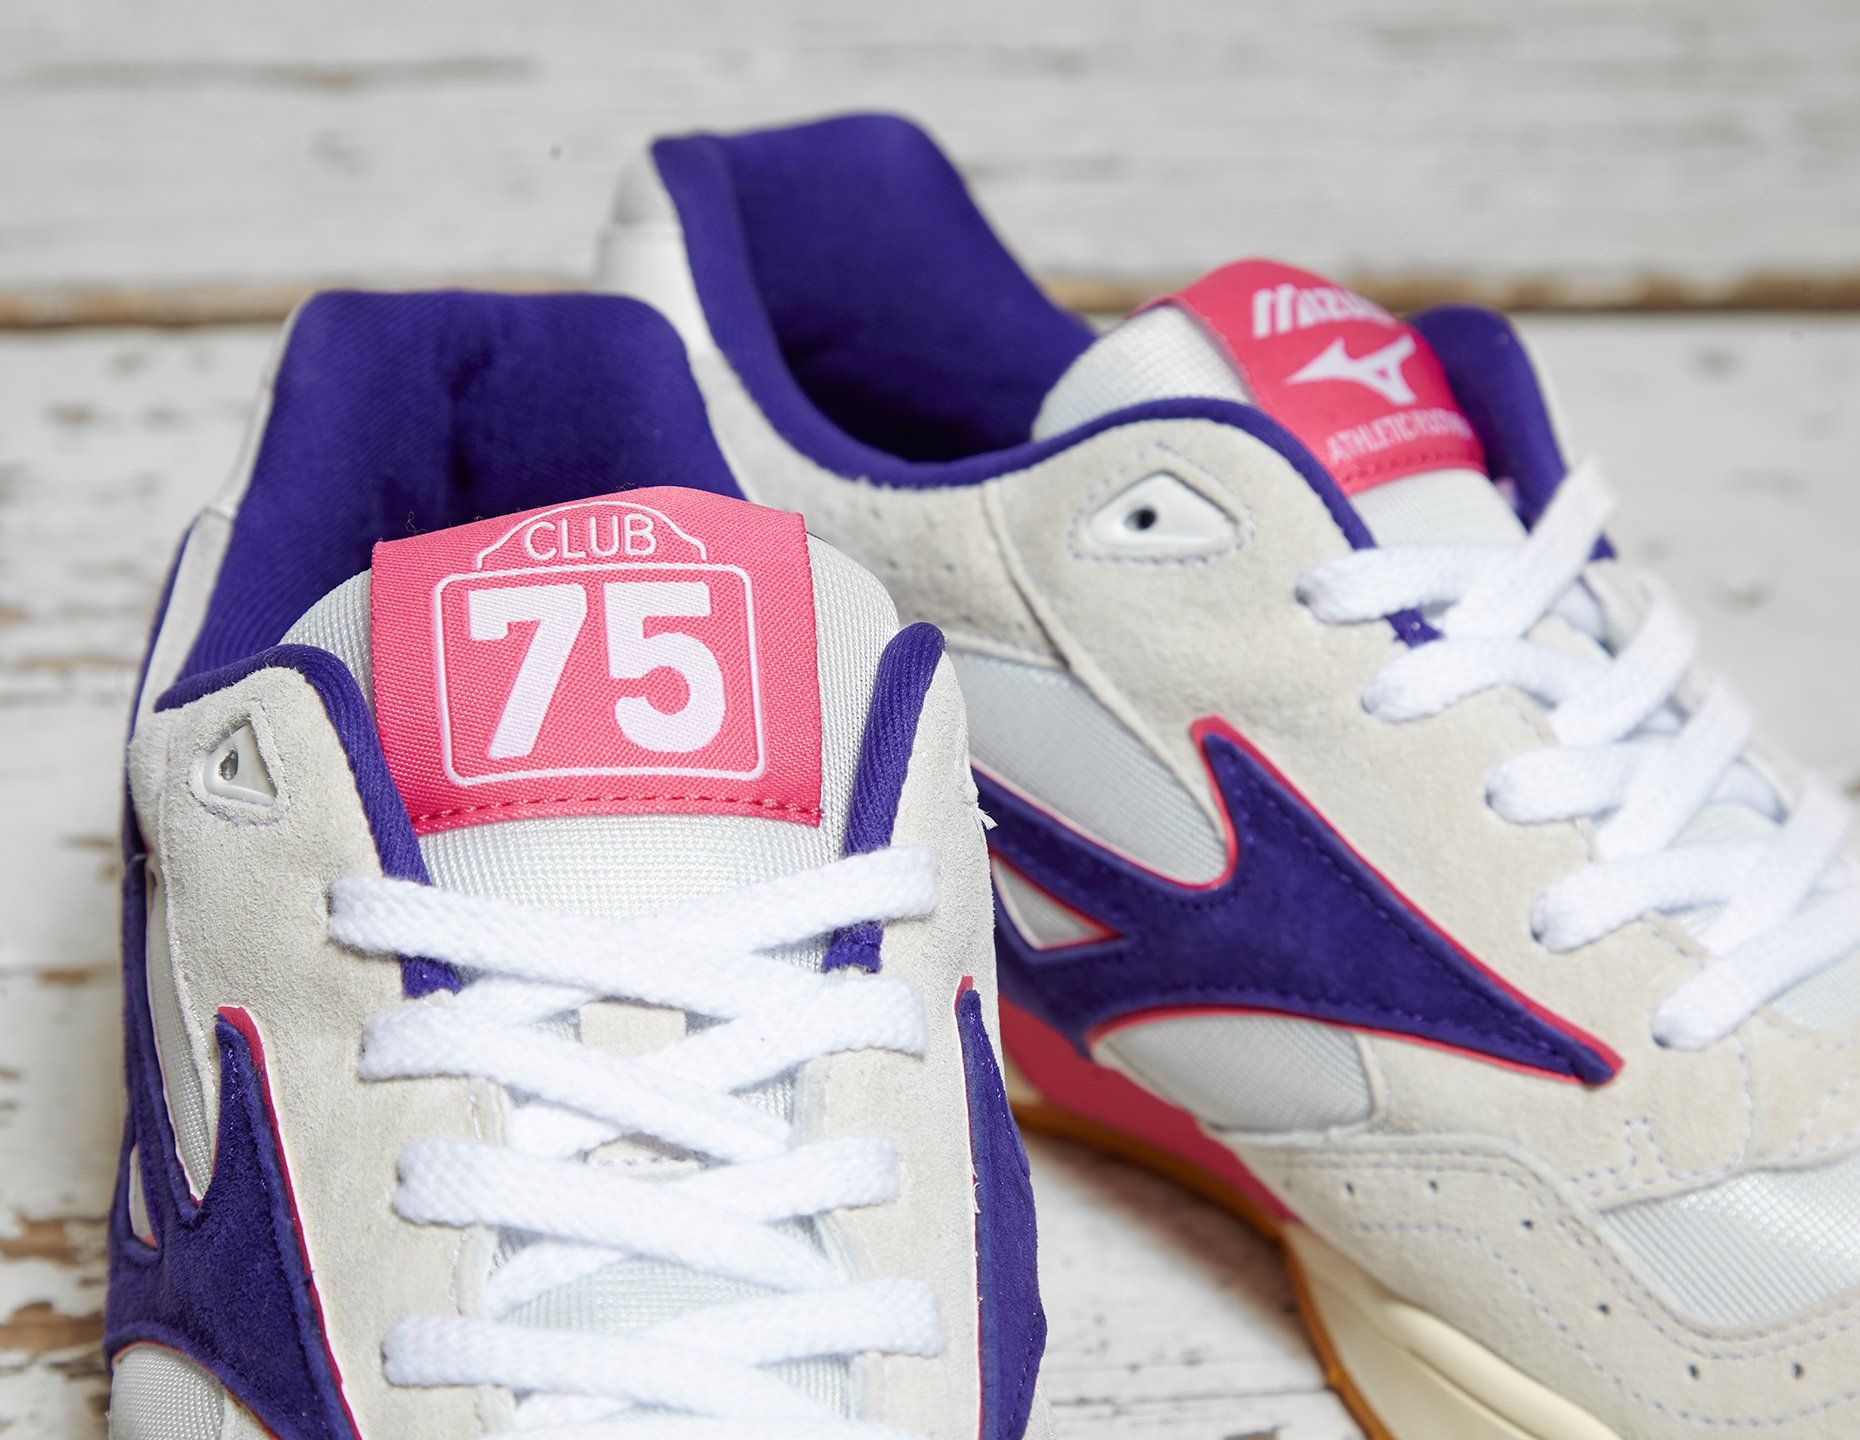 Mizuno x Club 75 Court Select